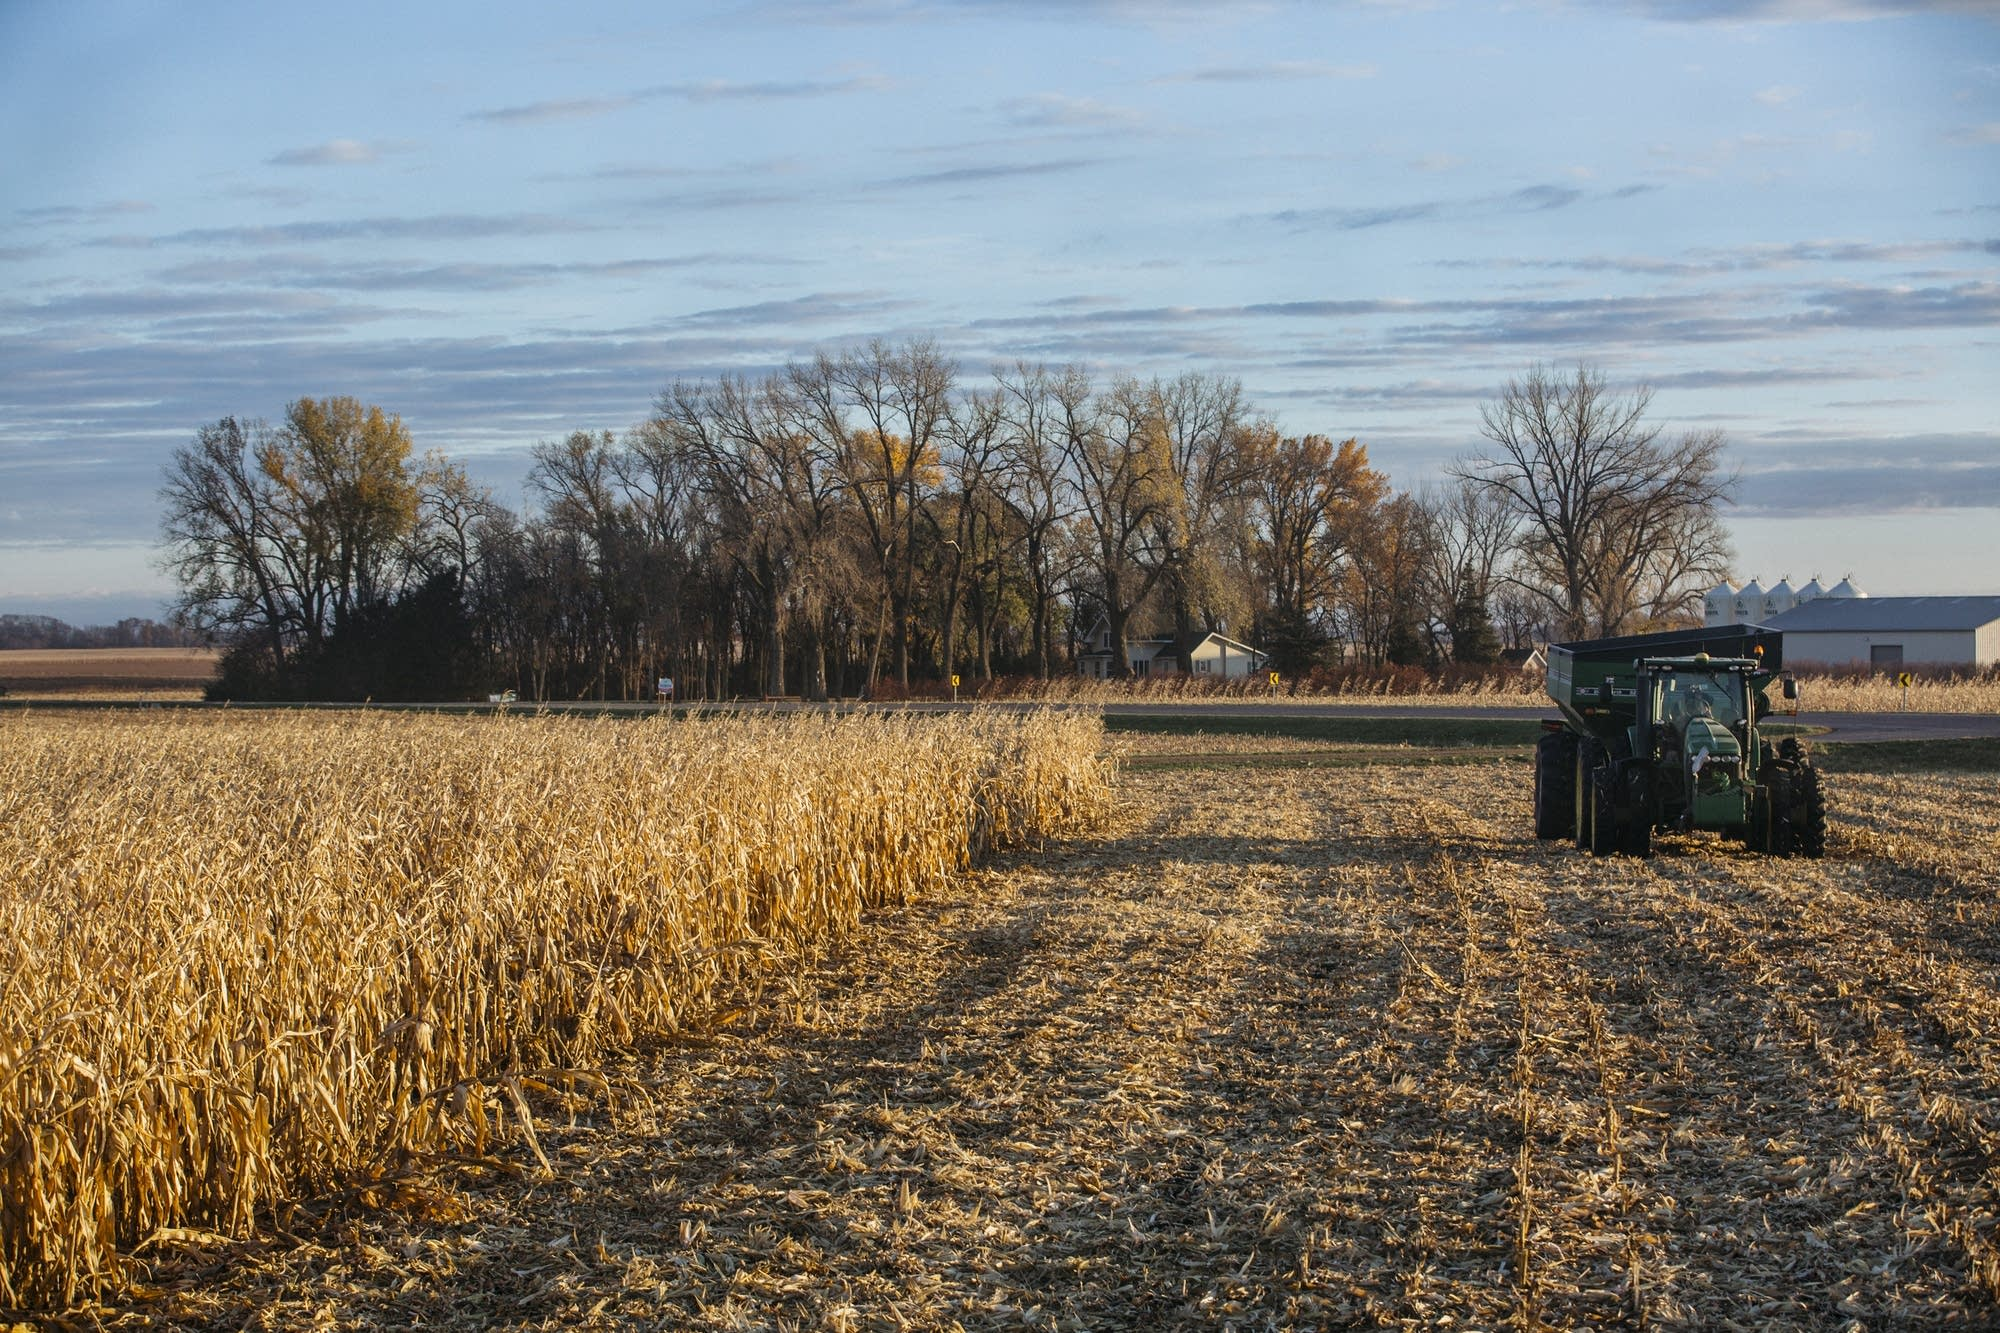 A tractor drives through a corn field.